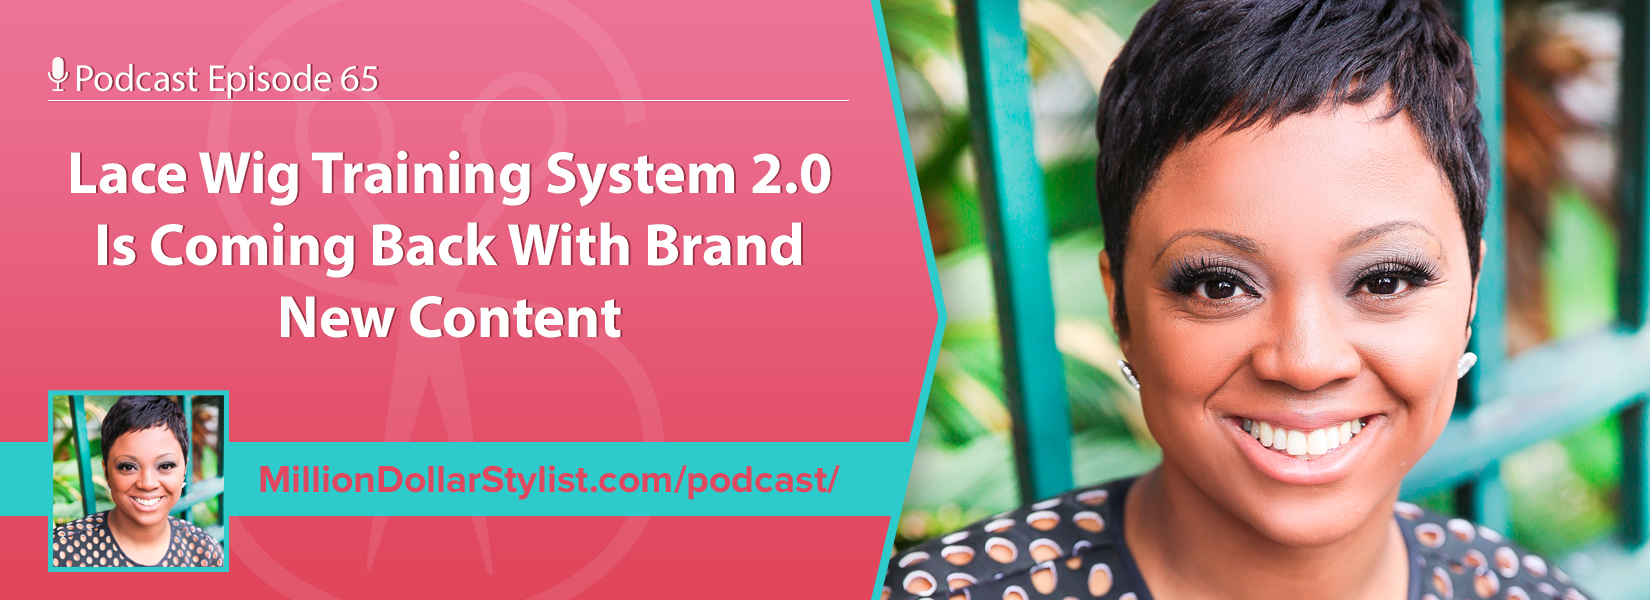 Episode 065 –  Lace Wig Training System 2.0 Is Coming Back With Brand New Content 1